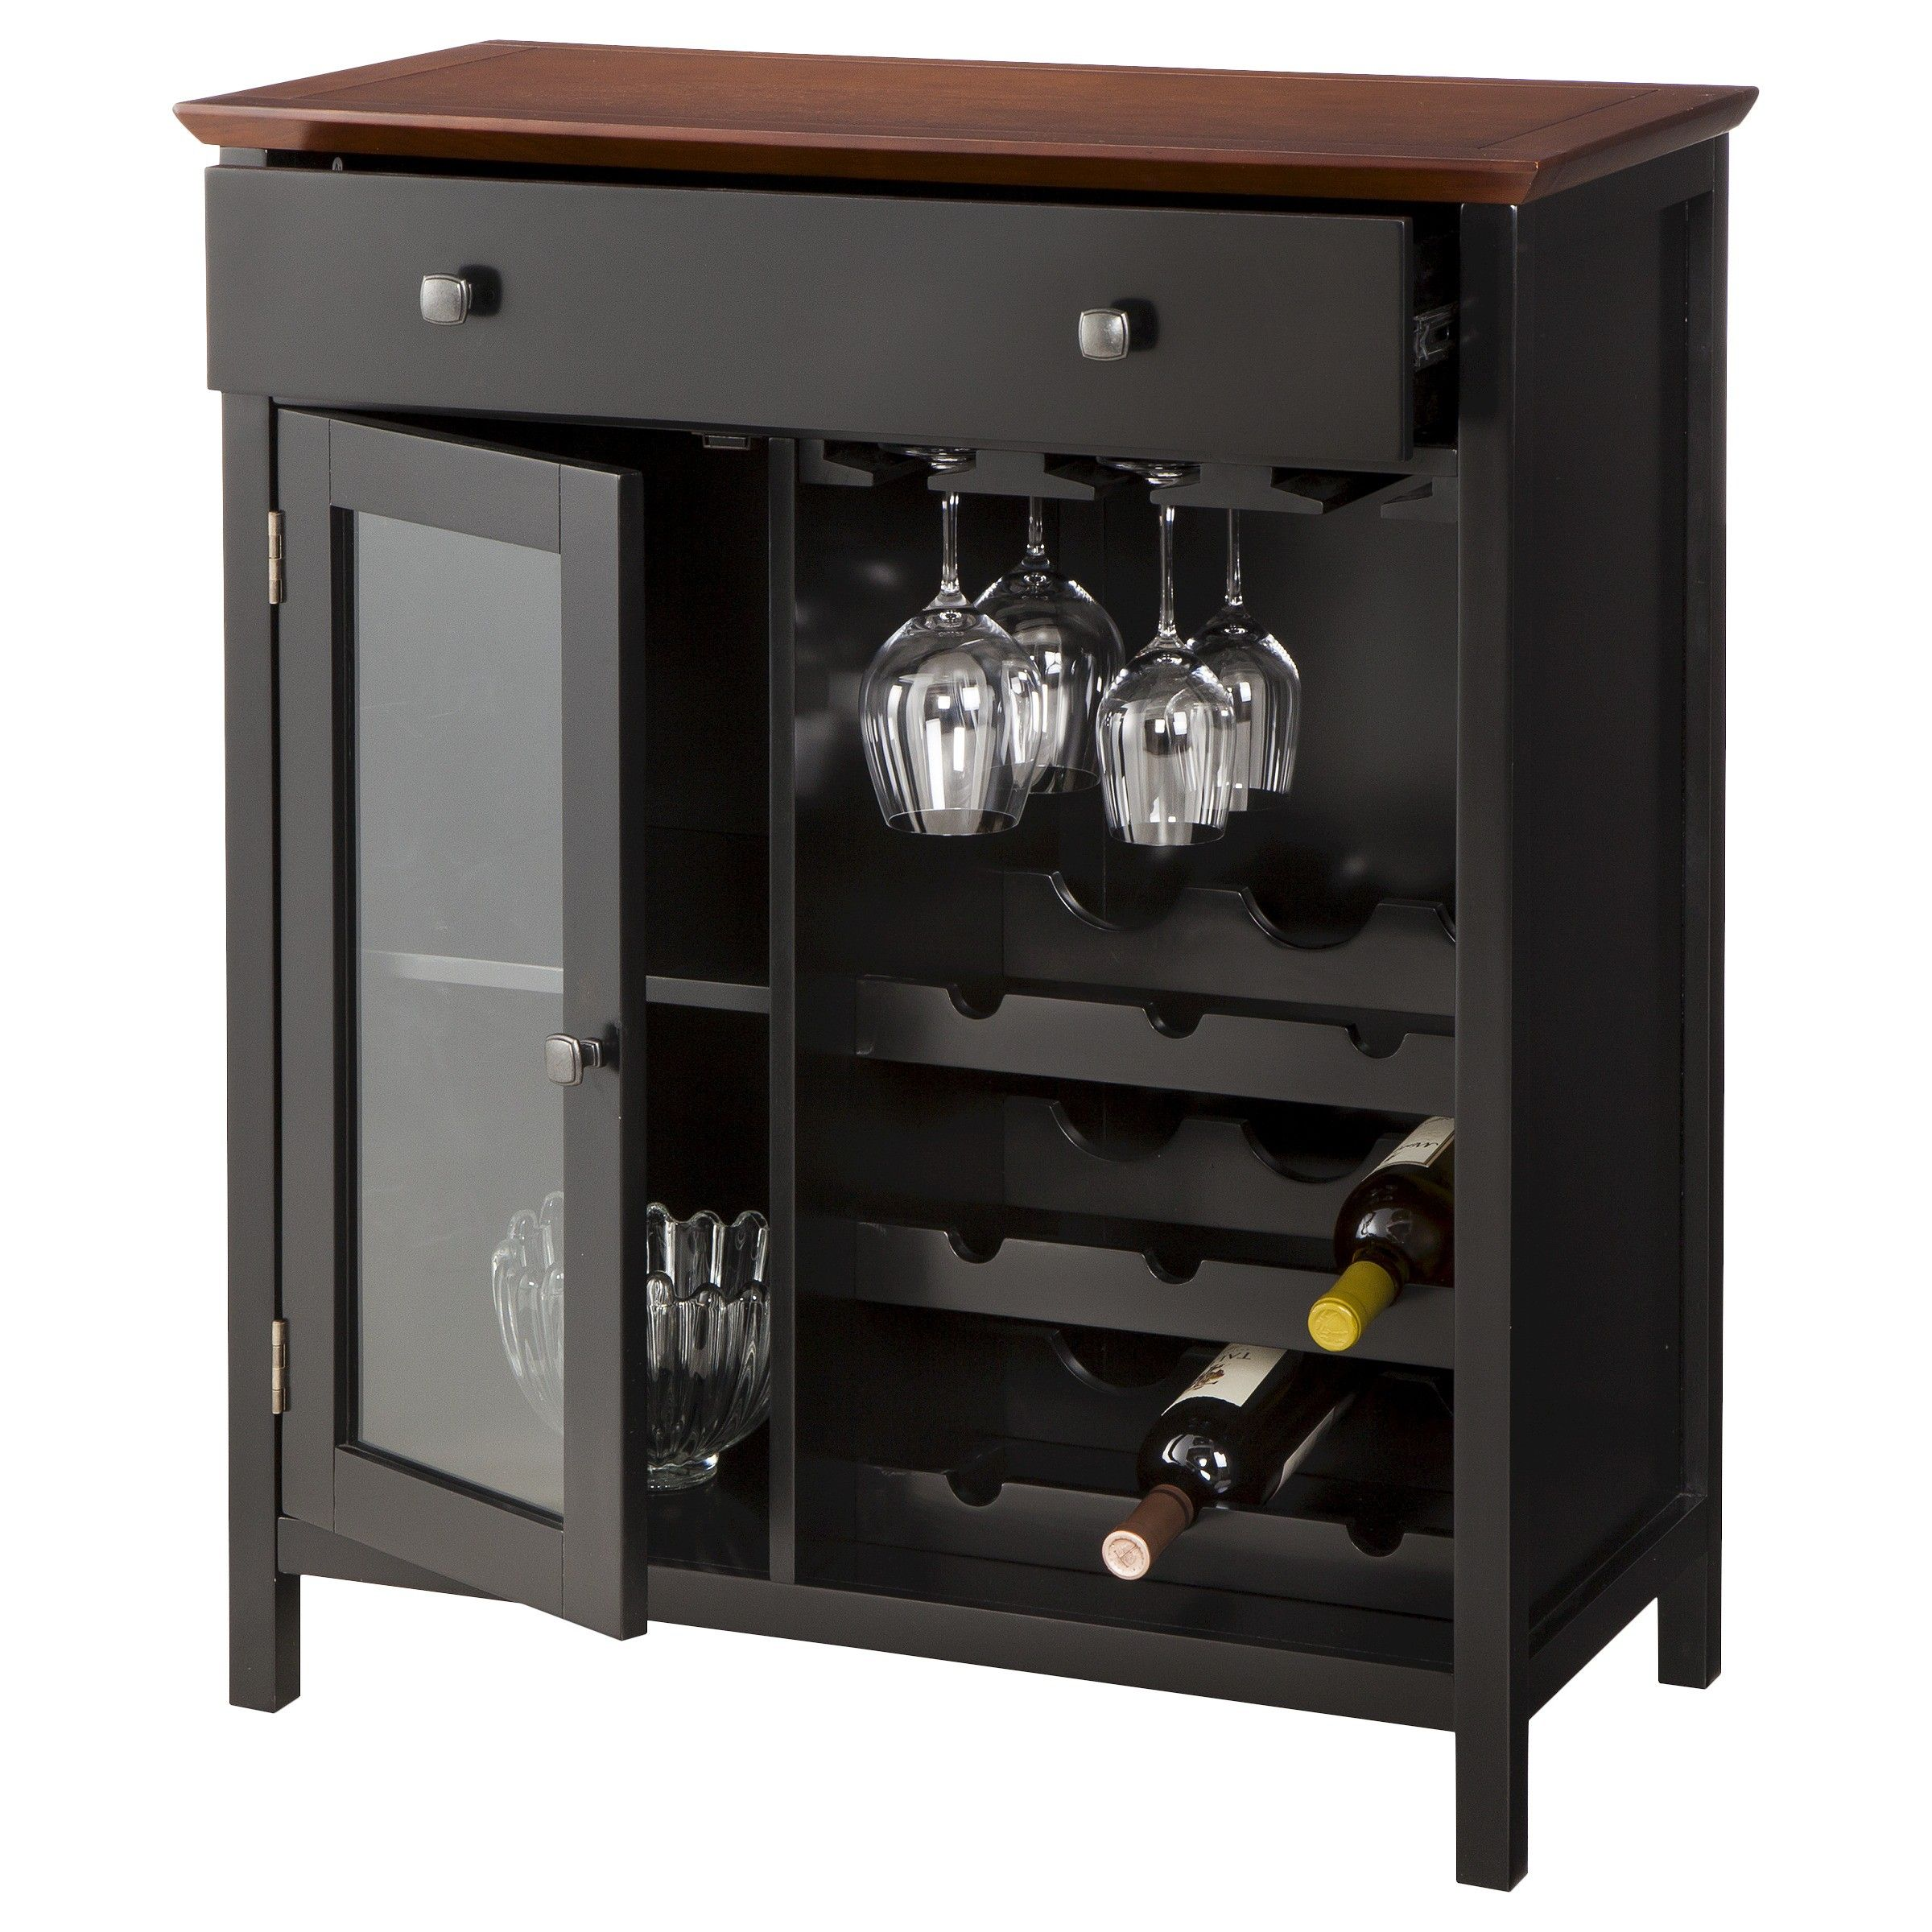 cabinets shop premium le full home cabinet now cache wine banner storage width and